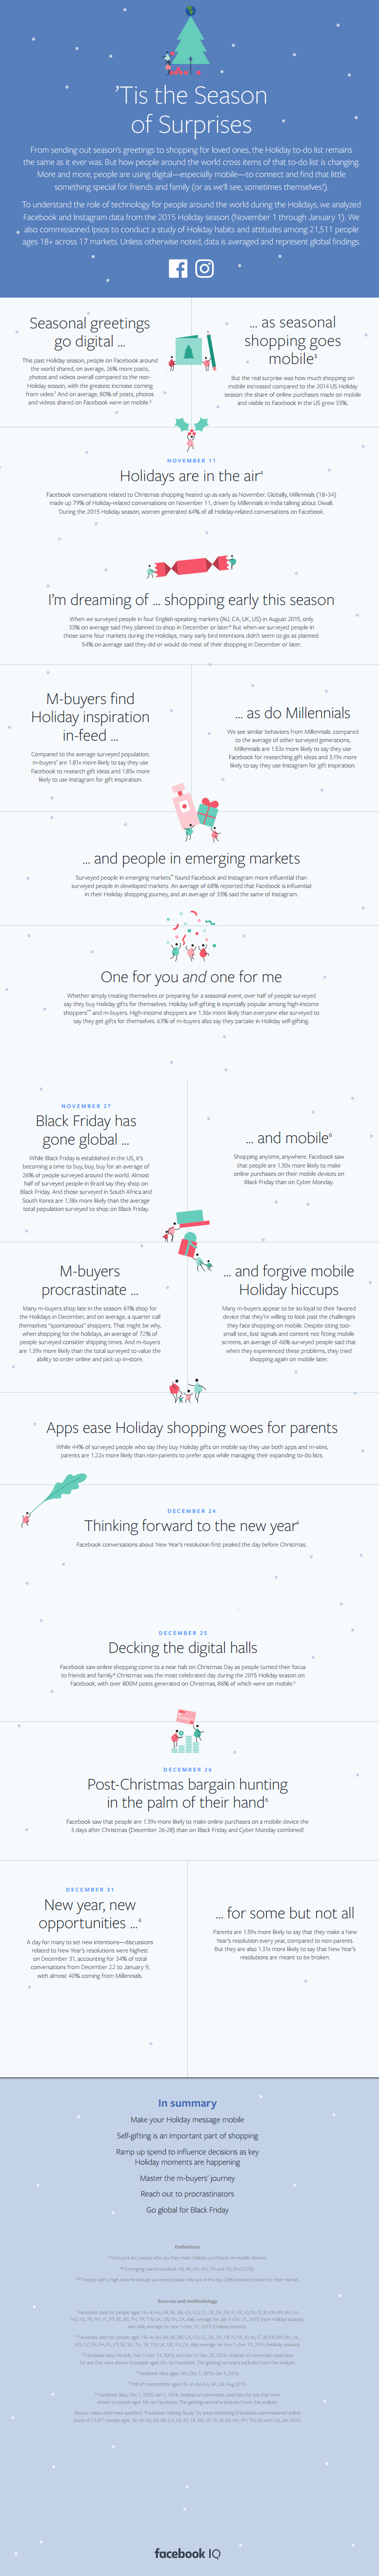 Facebook Releases New Data on Holiday Season Trends and Usage Patterns [Infographic] | Social Media Today